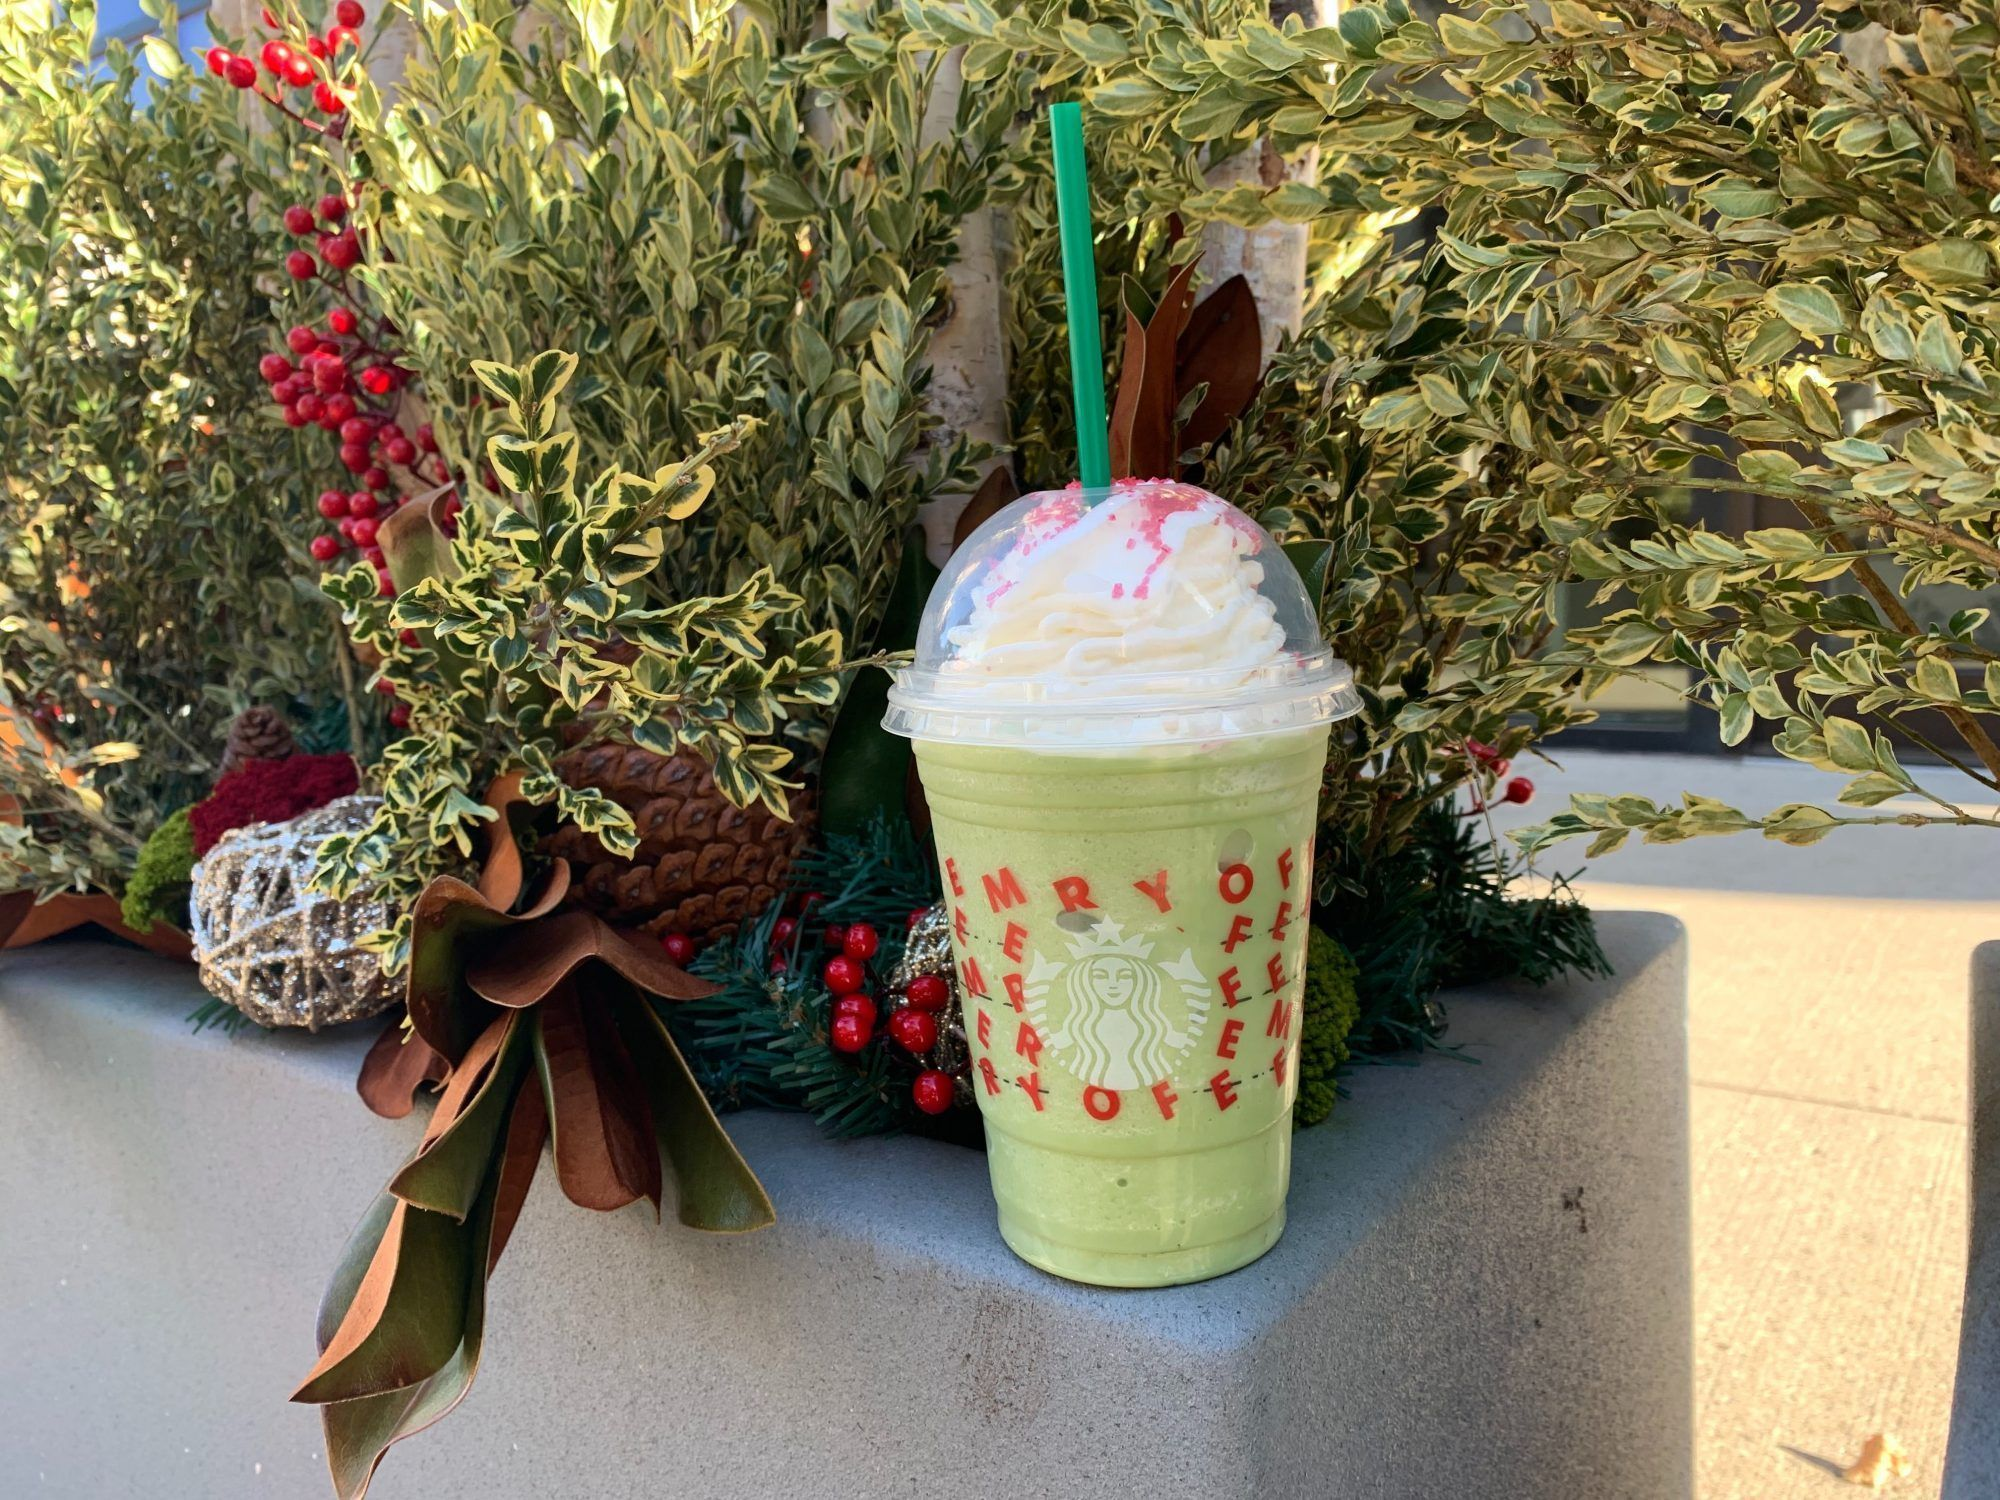 Starbucks Has a Grinch Frappuccino on Its Secret Menu #starbuckssecretmenudrinksfrappuccino Starbucks Has a Grinch Frappuccino on Its Secret Menu #starbuckssecretmenudrinks Starbucks Has a Grinch Frappuccino on Its Secret Menu #starbuckssecretmenudrinksfrappuccino Starbucks Has a Grinch Frappuccino on Its Secret Menu #starbuckssecretmenudrinks Starbucks Has a Grinch Frappuccino on Its Secret Menu #starbuckssecretmenudrinksfrappuccino Starbucks Has a Grinch Frappuccino on Its Secret Menu #starbuc #starbuckssecretmenudrinksfrappuccino